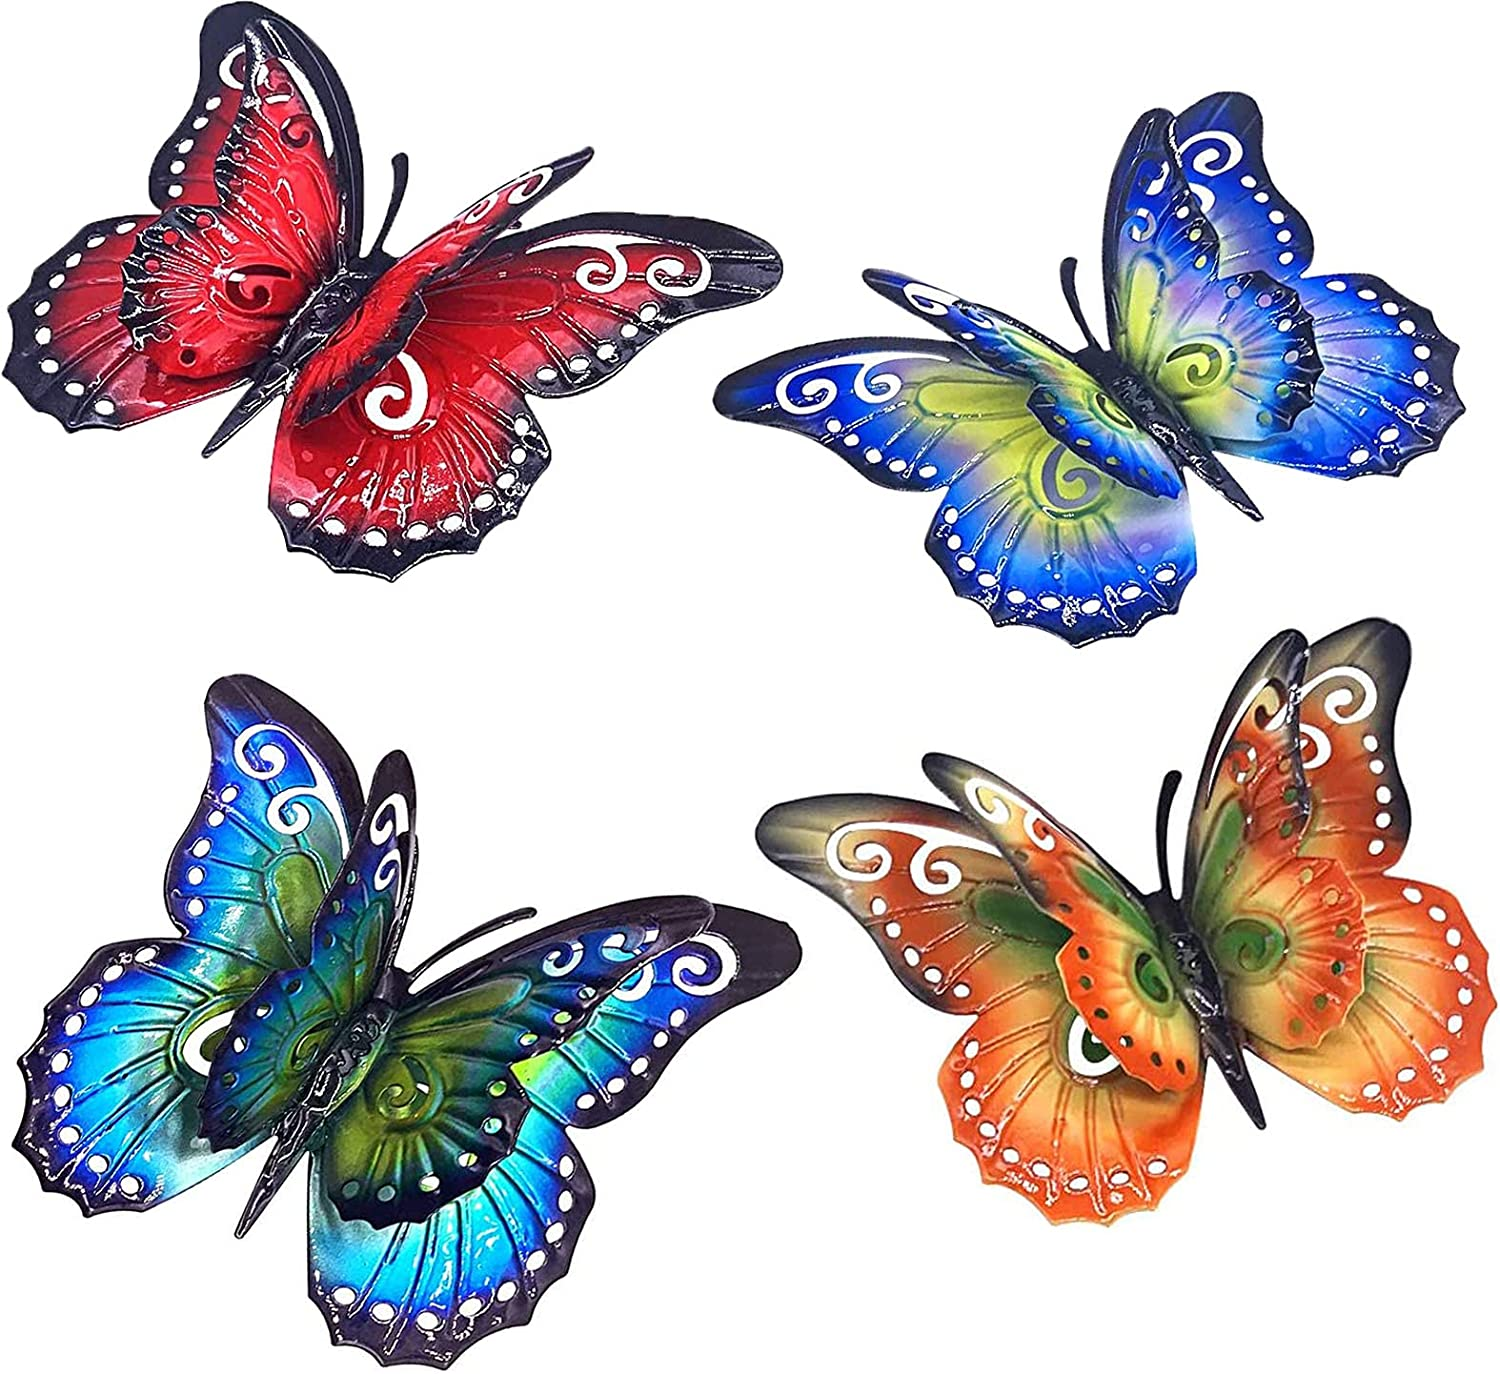 4Pcs Metal Butterfly Wall Decor, 3D Sturdy Metal Wall Art Fence Decor, Indoor Outdoor Butterfly Decorations for Front Porch, Bedside, TV Wall, Patio, Fence, Garden, Yard, Mushroom, Flowers and Gifts